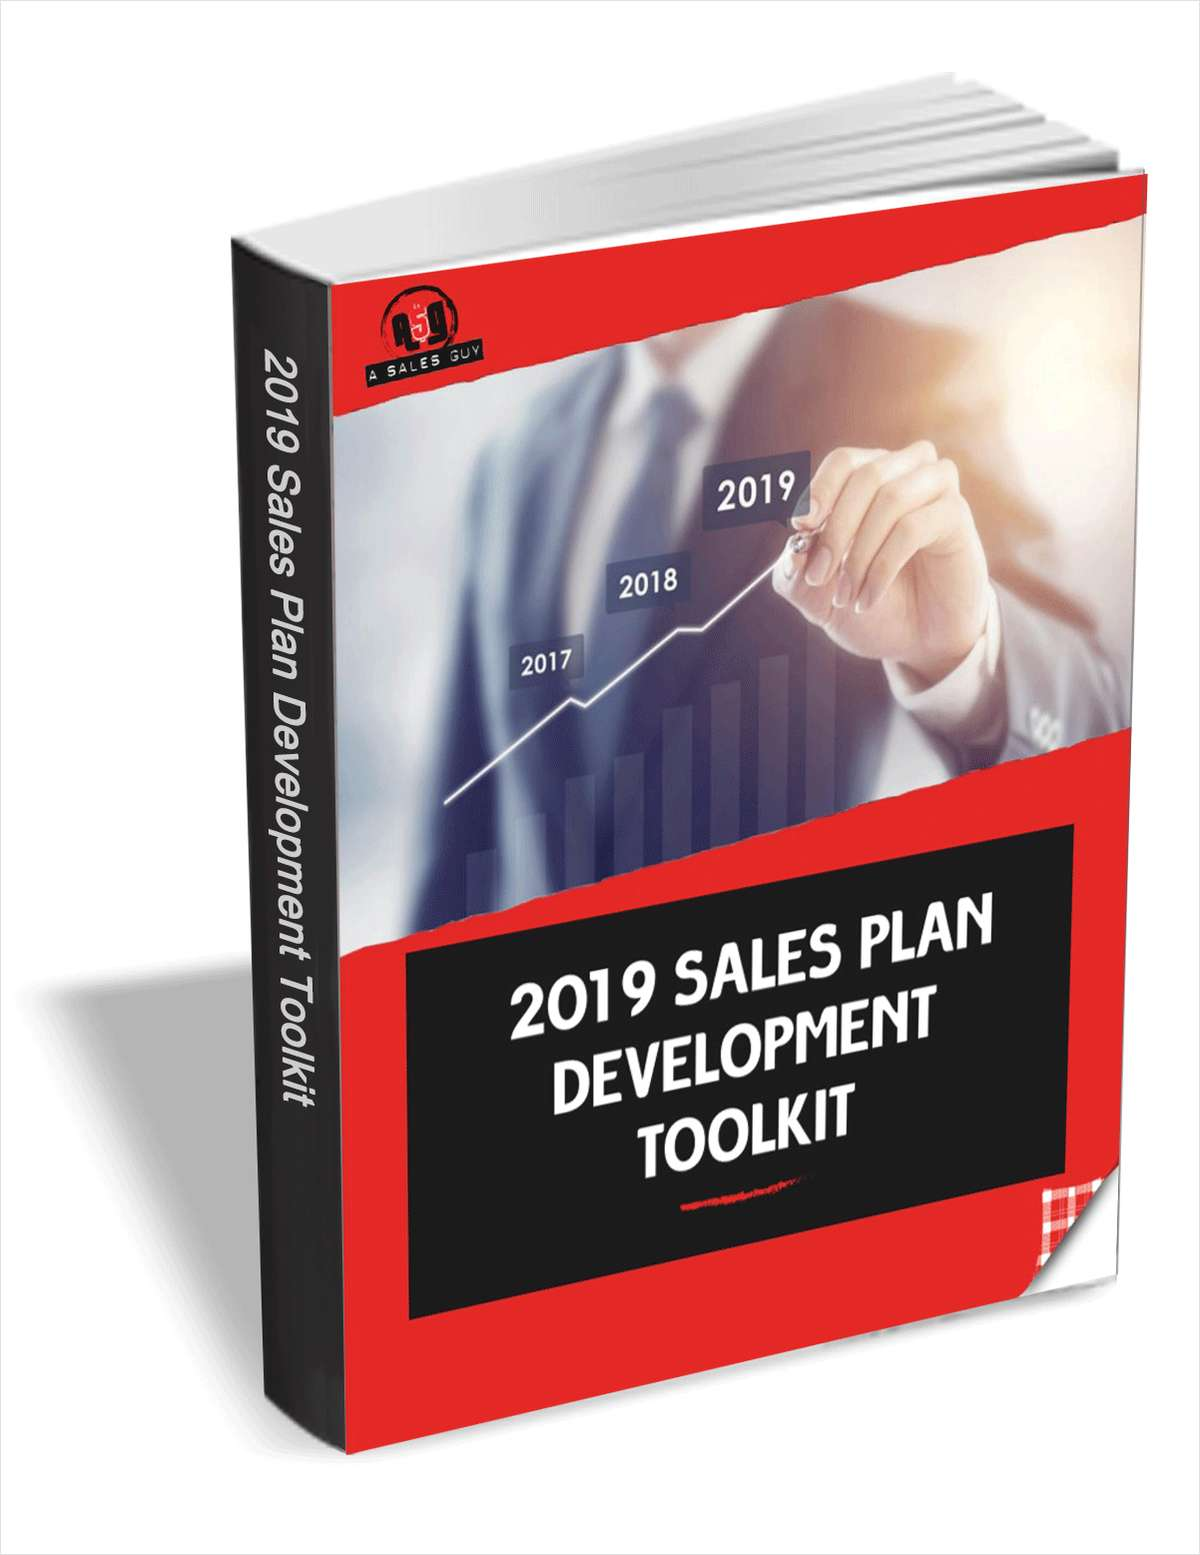 2019 Sales Plan Development Toolkit